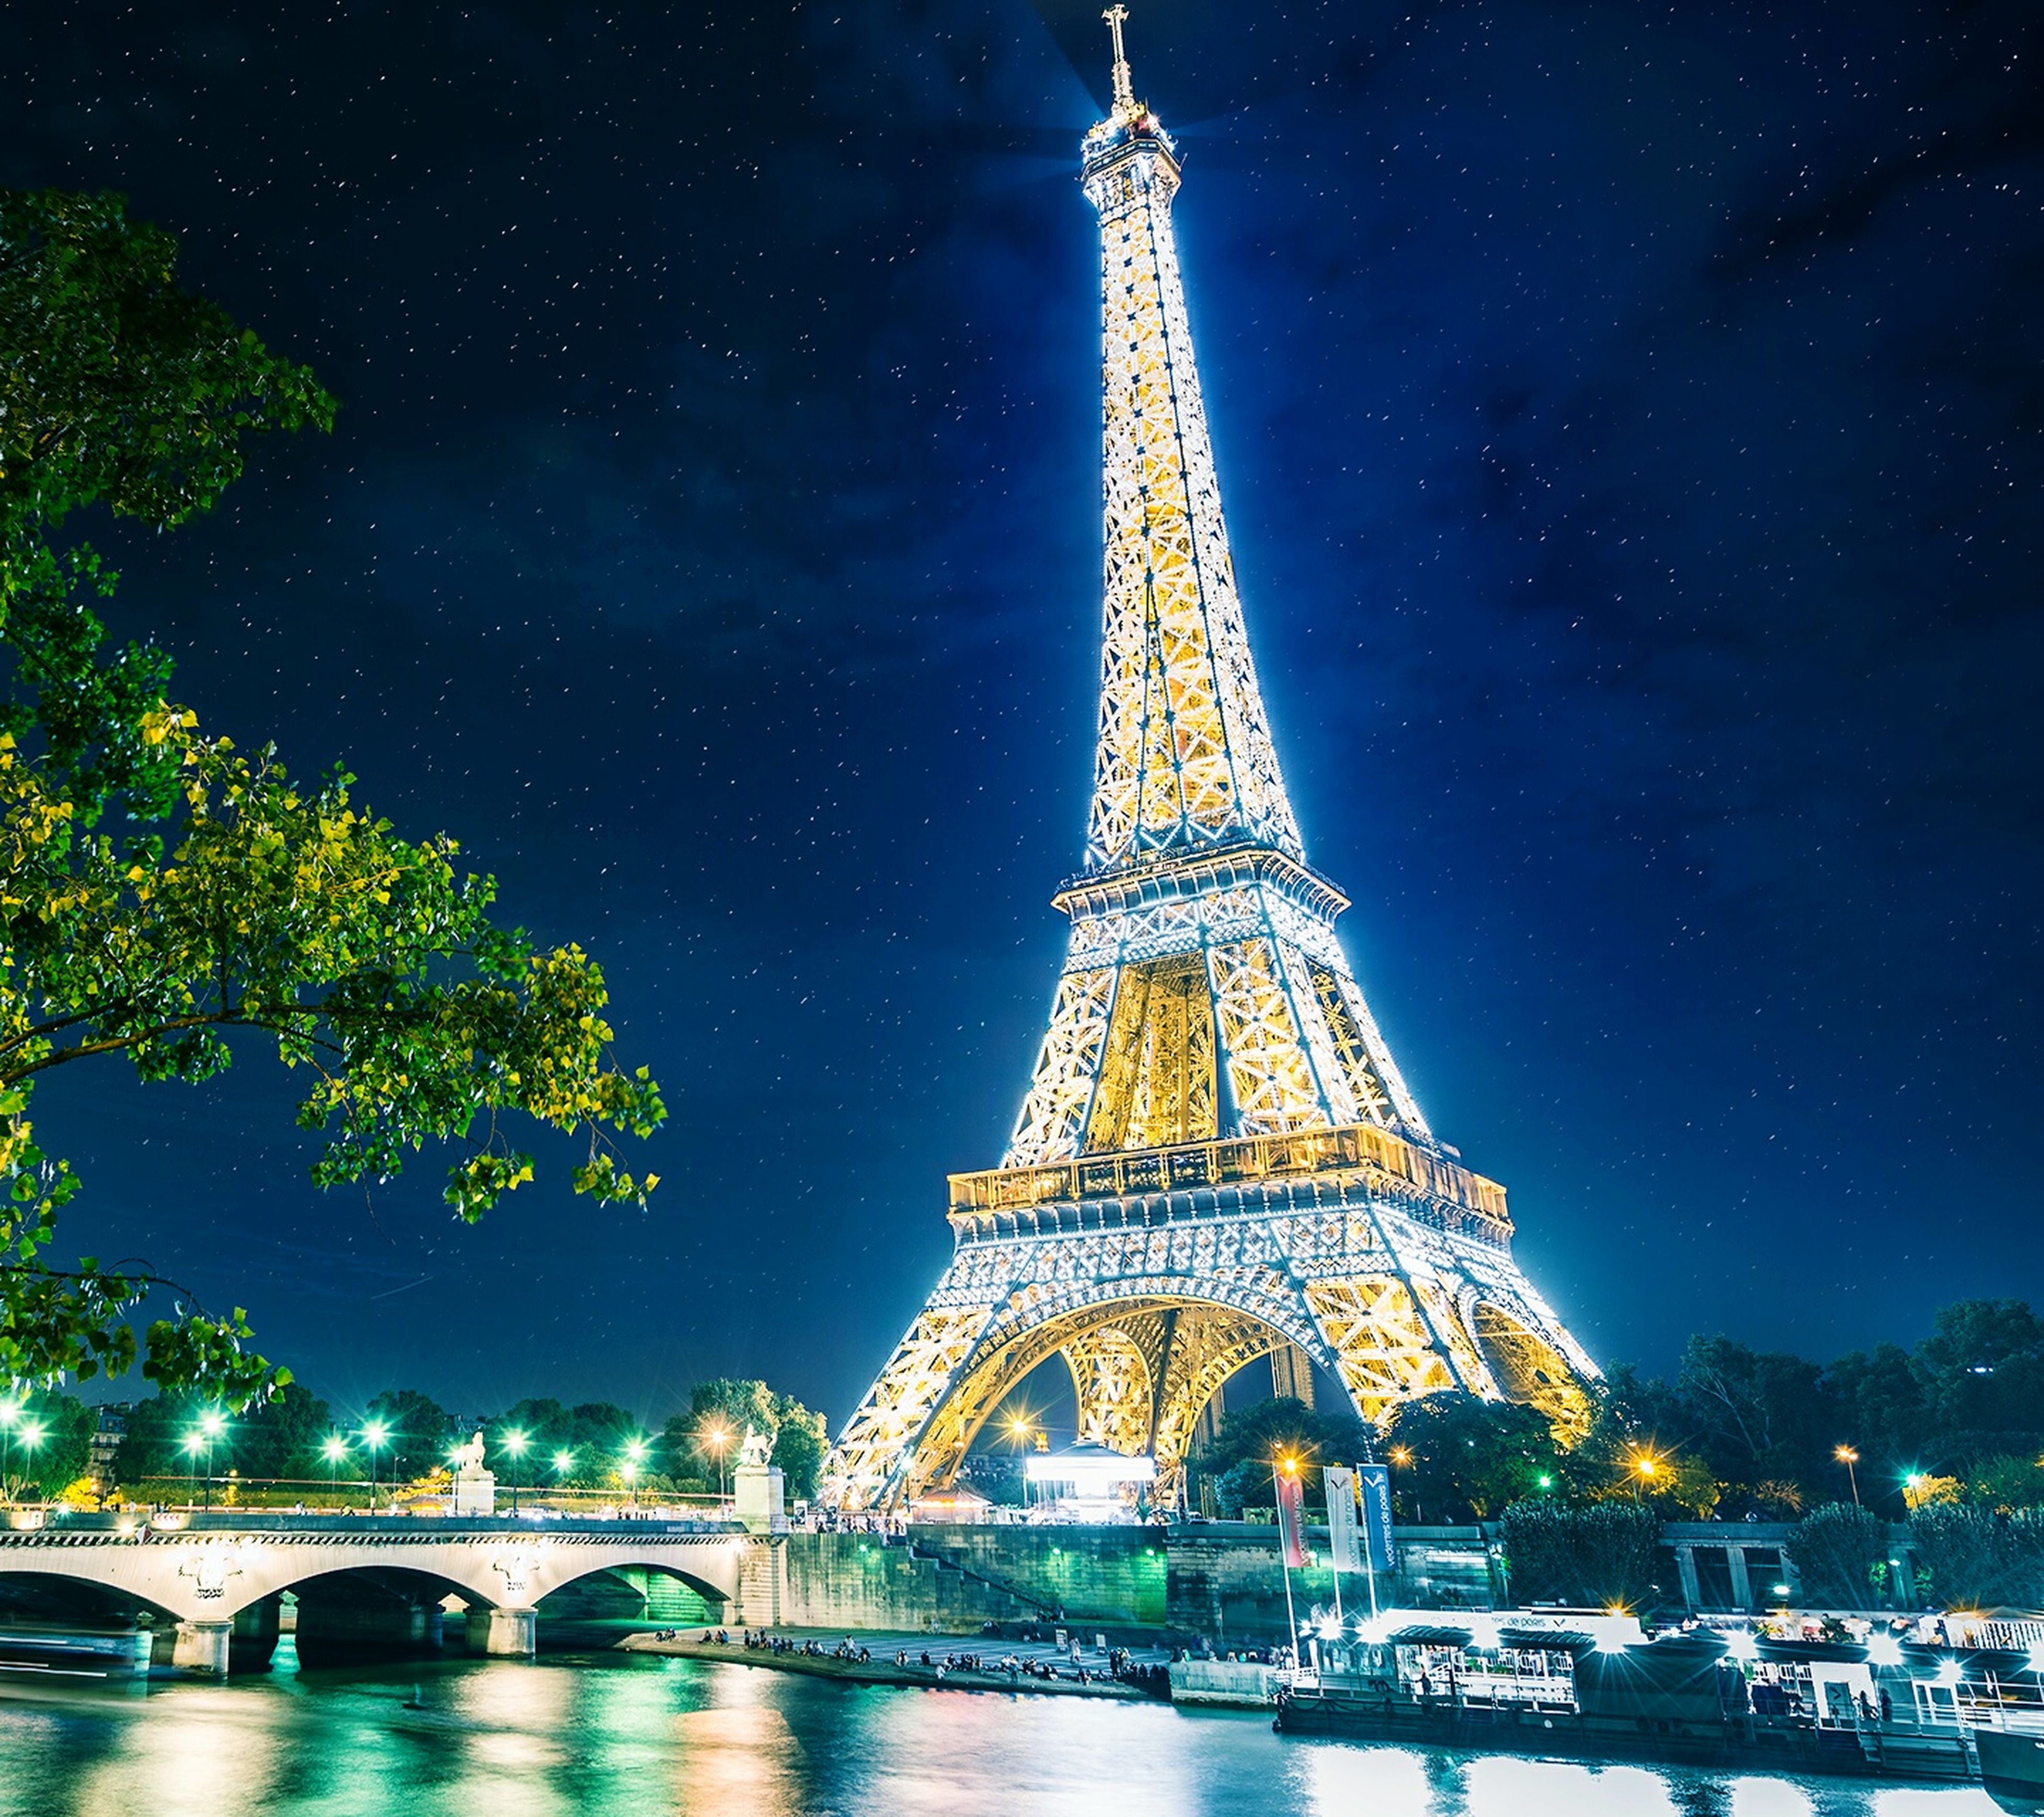 night, travel destinations, famous place, travel, tourism, international landmark, built structure, architecture, illuminated, eiffel tower, capital cities, sky, water, tree, culture, tower, low angle view, history, river, building exterior